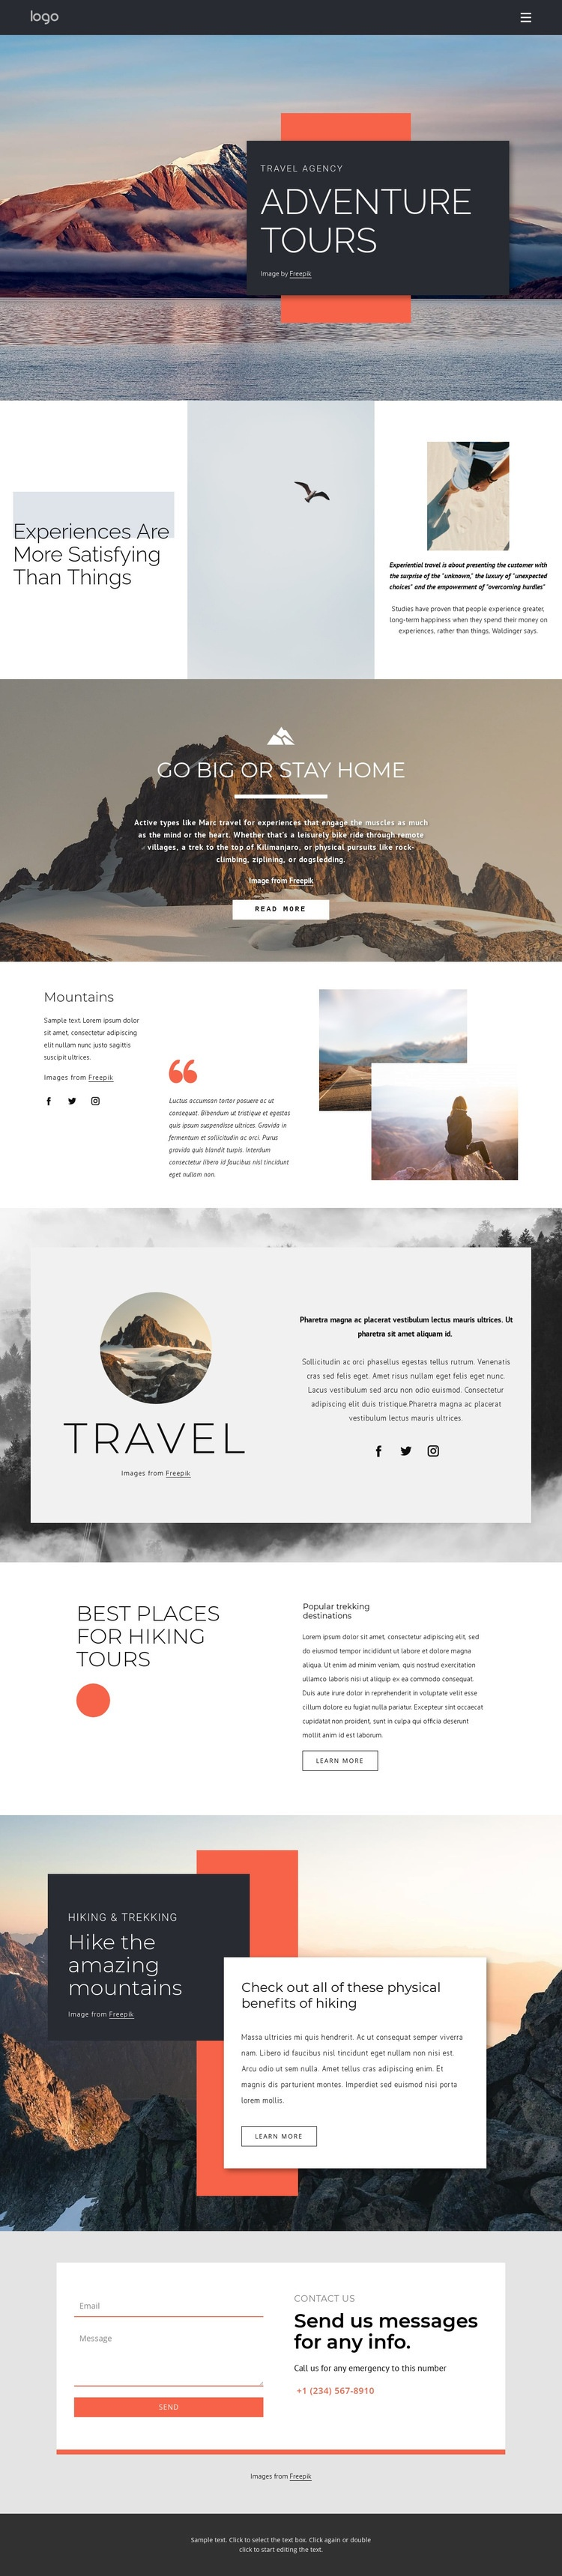 We provide hiking tours Html Code Example